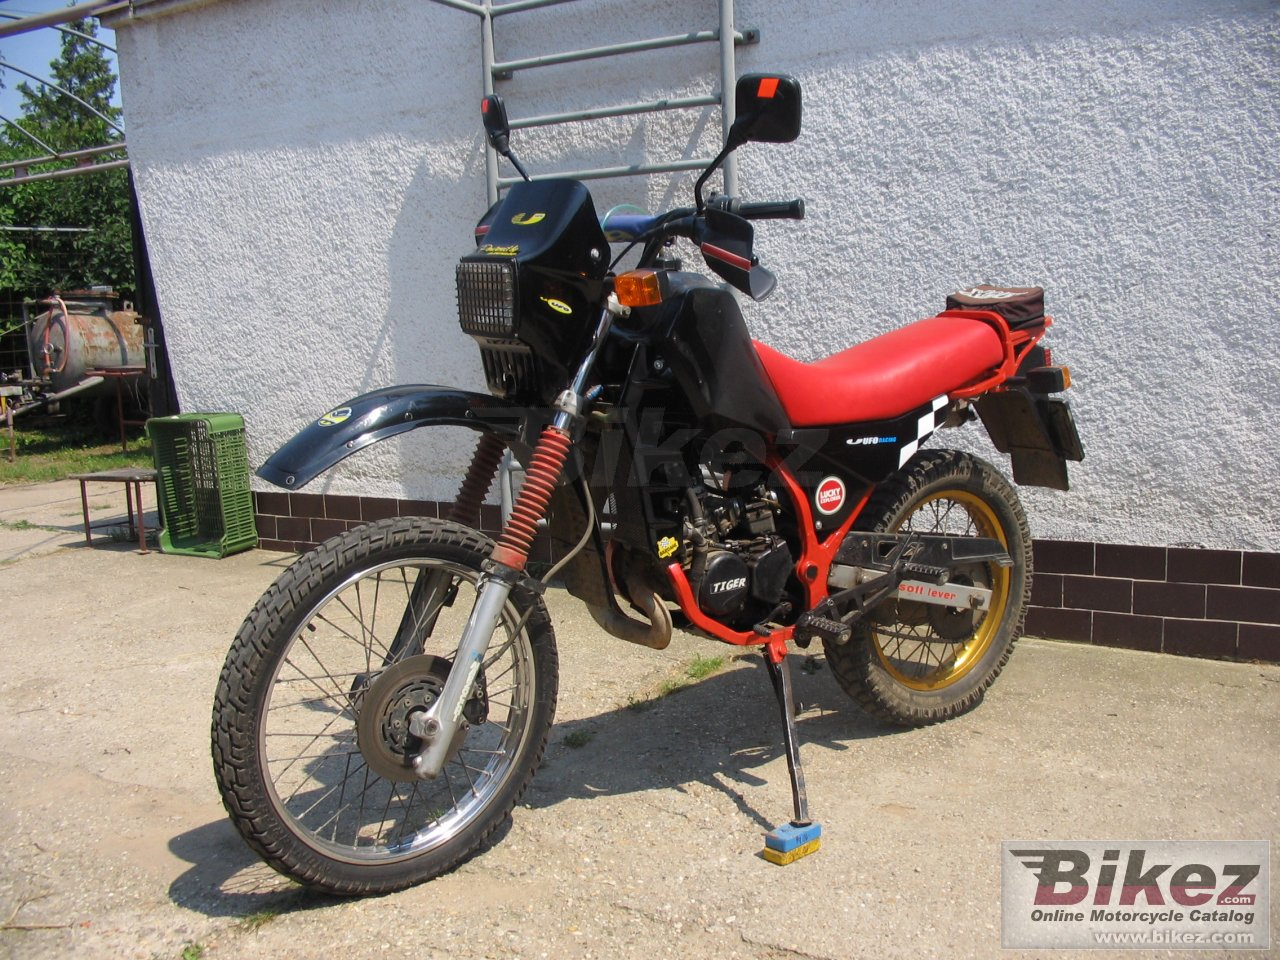 Big kia xr 125 tiger picture and wallpaper from Bikez.com